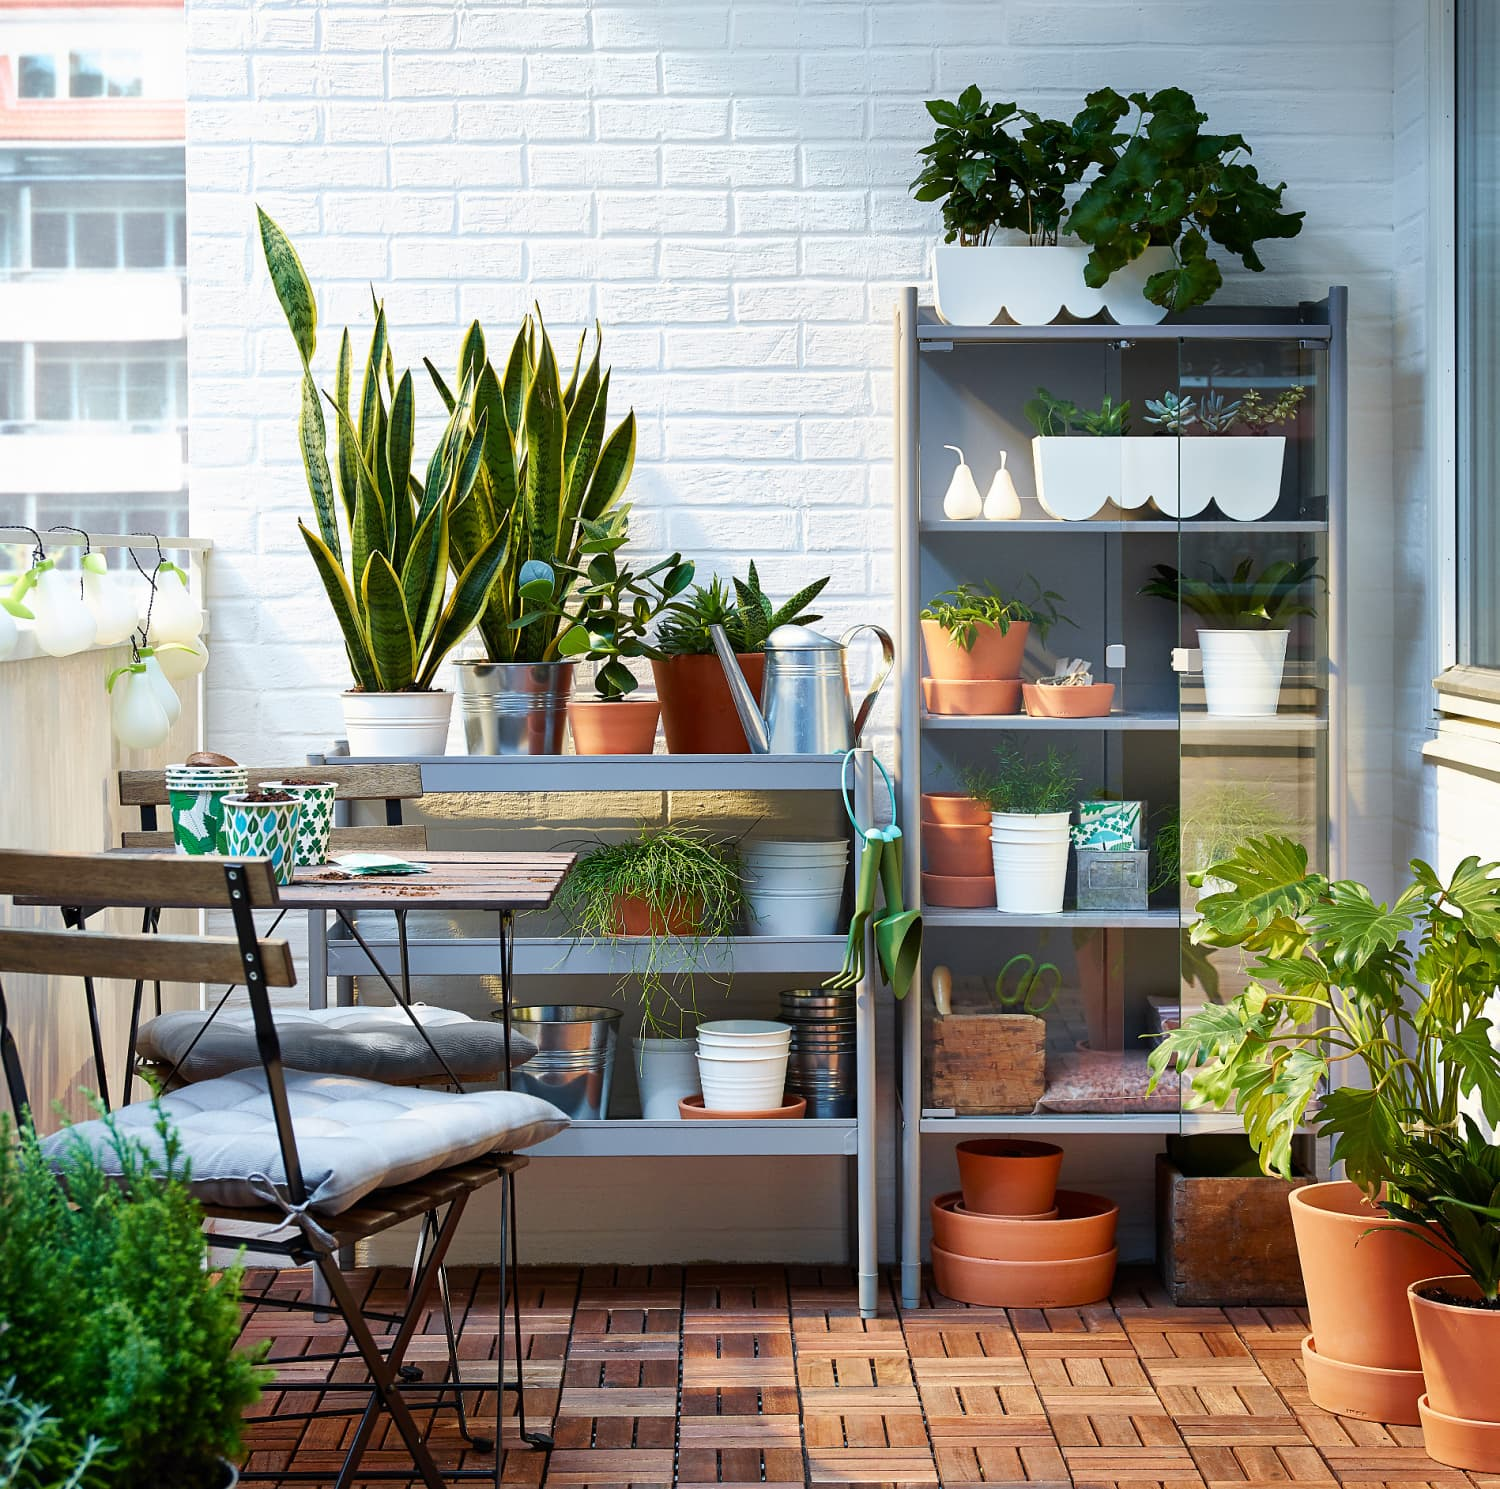 On Sale at IKEA Right Now: Kitchen, Outdoor, and More